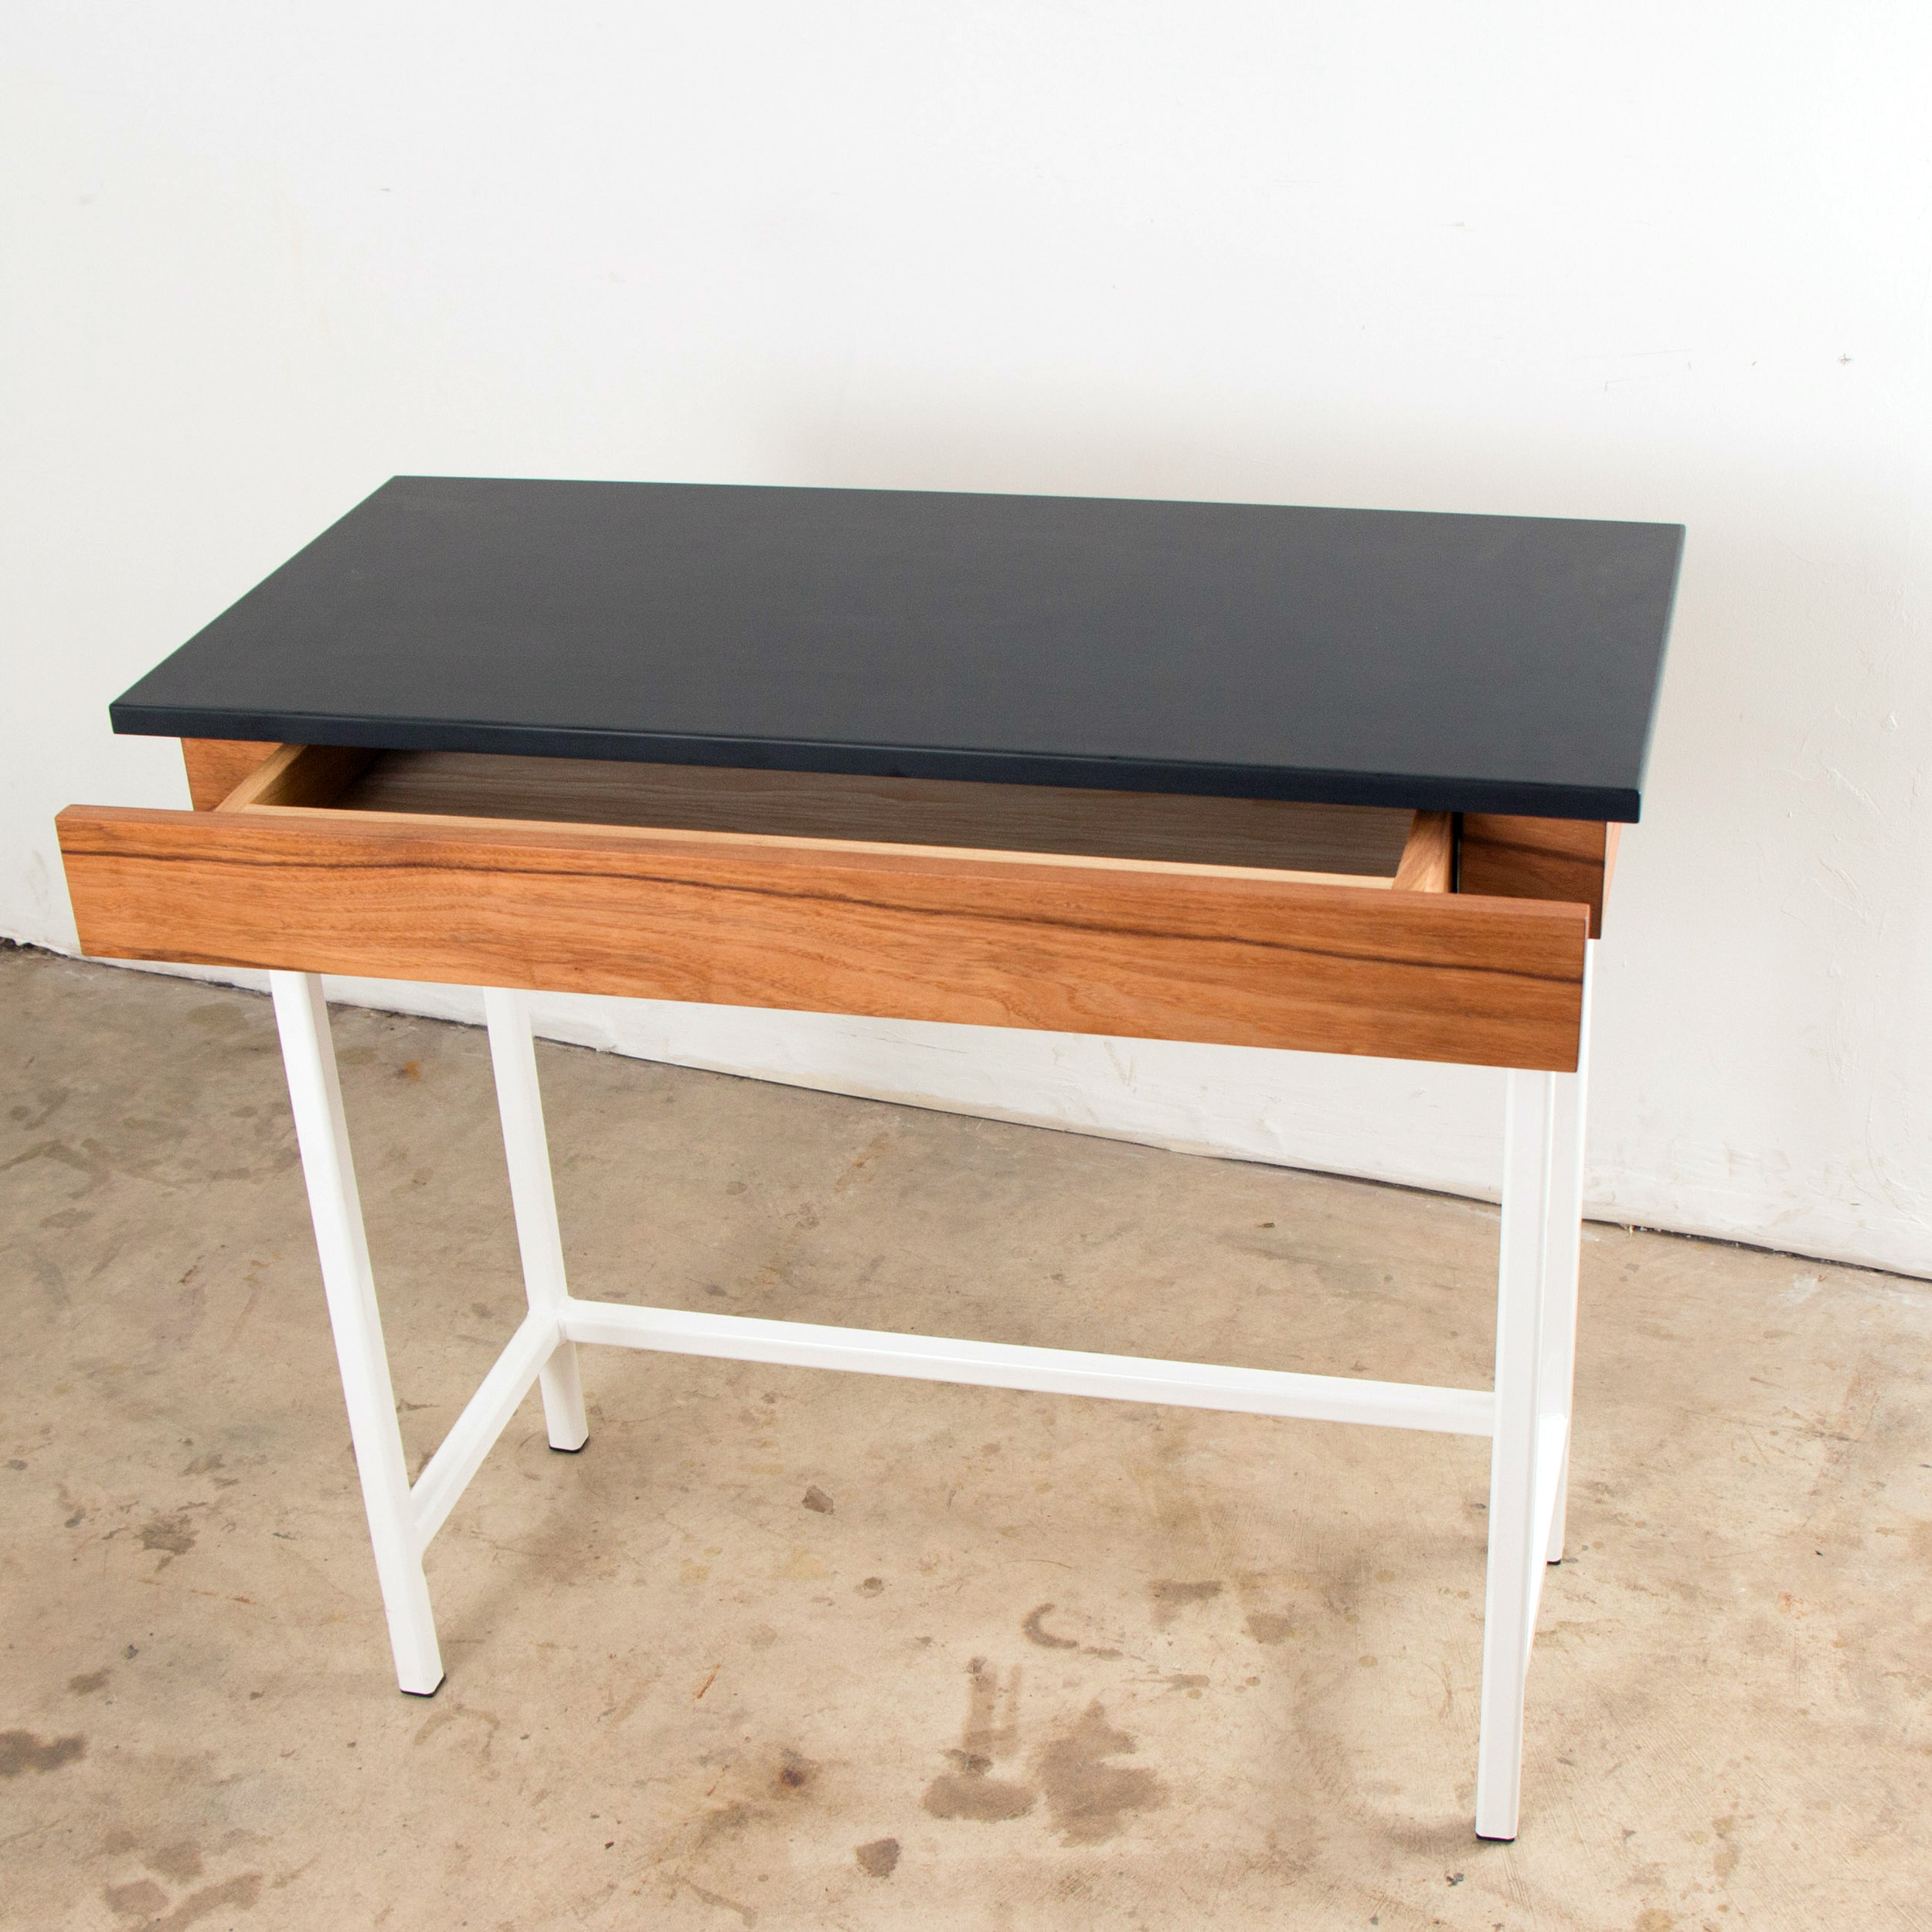 Phenolic Pecan Desk with White Steel base